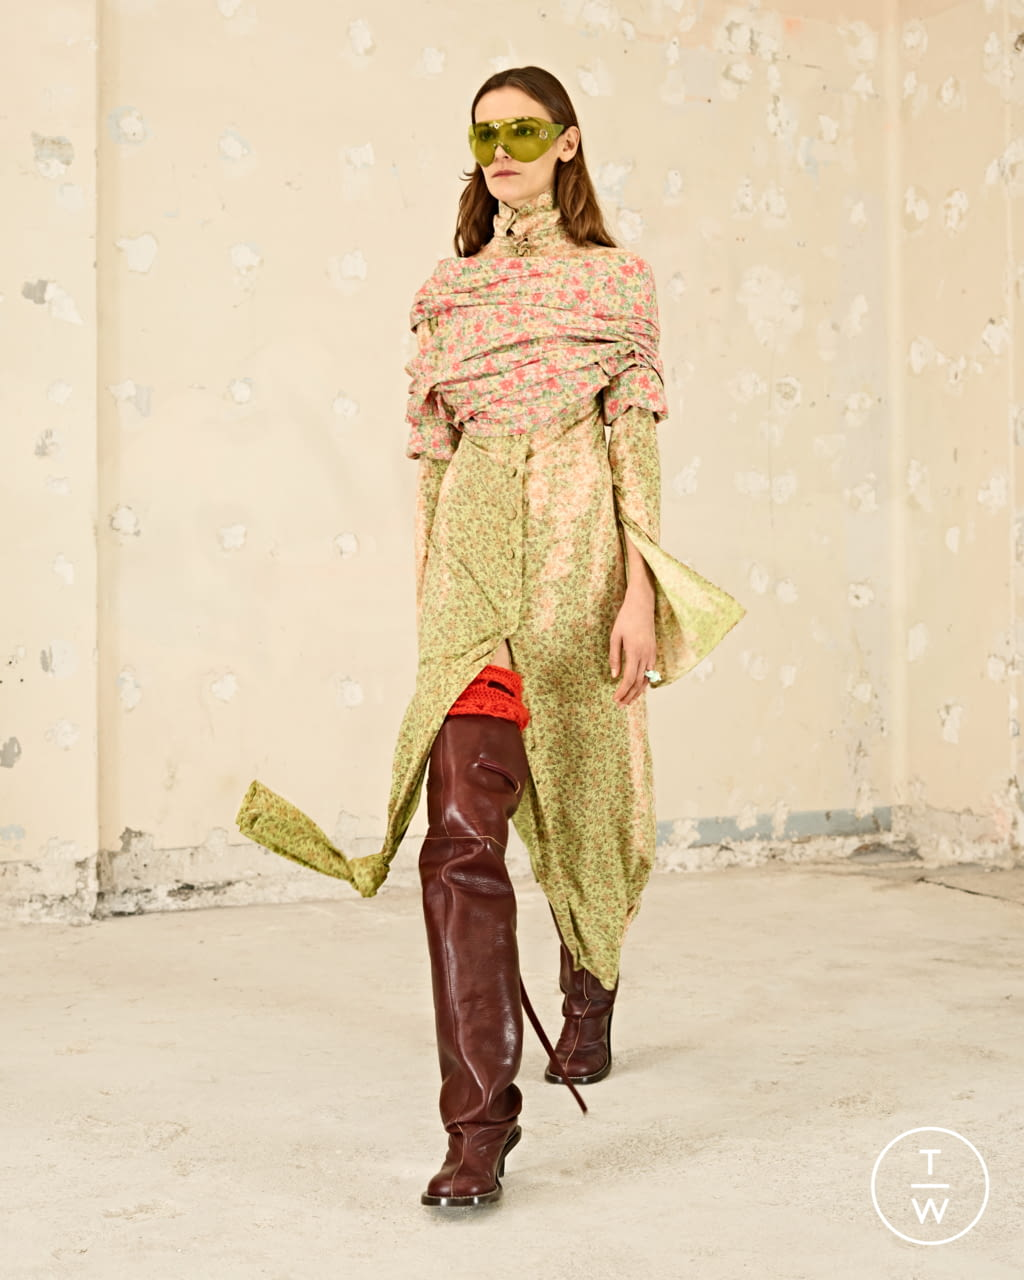 look 19 as fw21 womens runway press site 4265 40adfd - Paris Fashion Week and an Invitation to Release Dopamine